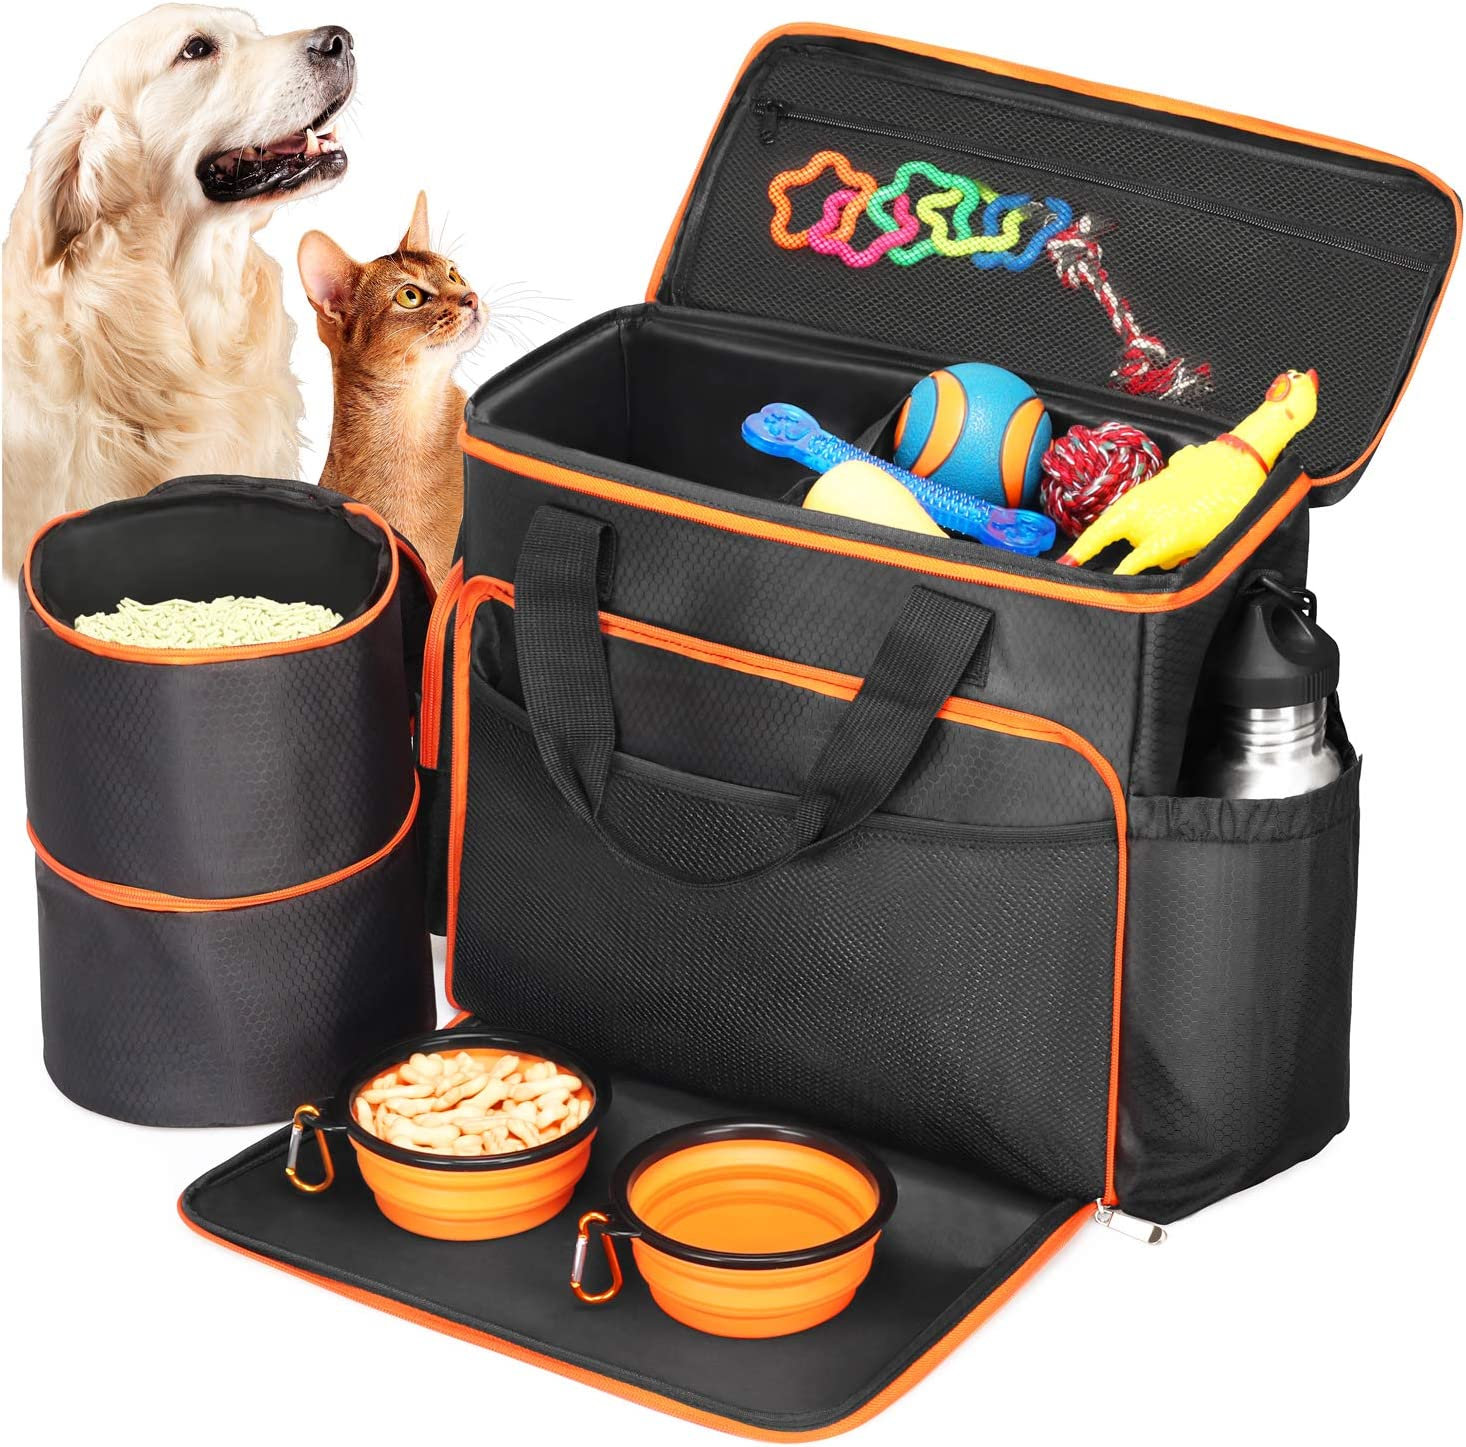 SEGMINISMART Babyltrl Dog Travel Bag - Airline Approved Pet Food Carrier  Bag for Dogs - Includes 1 Pet Travel Tote, 2 Dog Food Containers, 2  Collapsible Dog Bowls: Amazon.co.uk: Pet Supplies